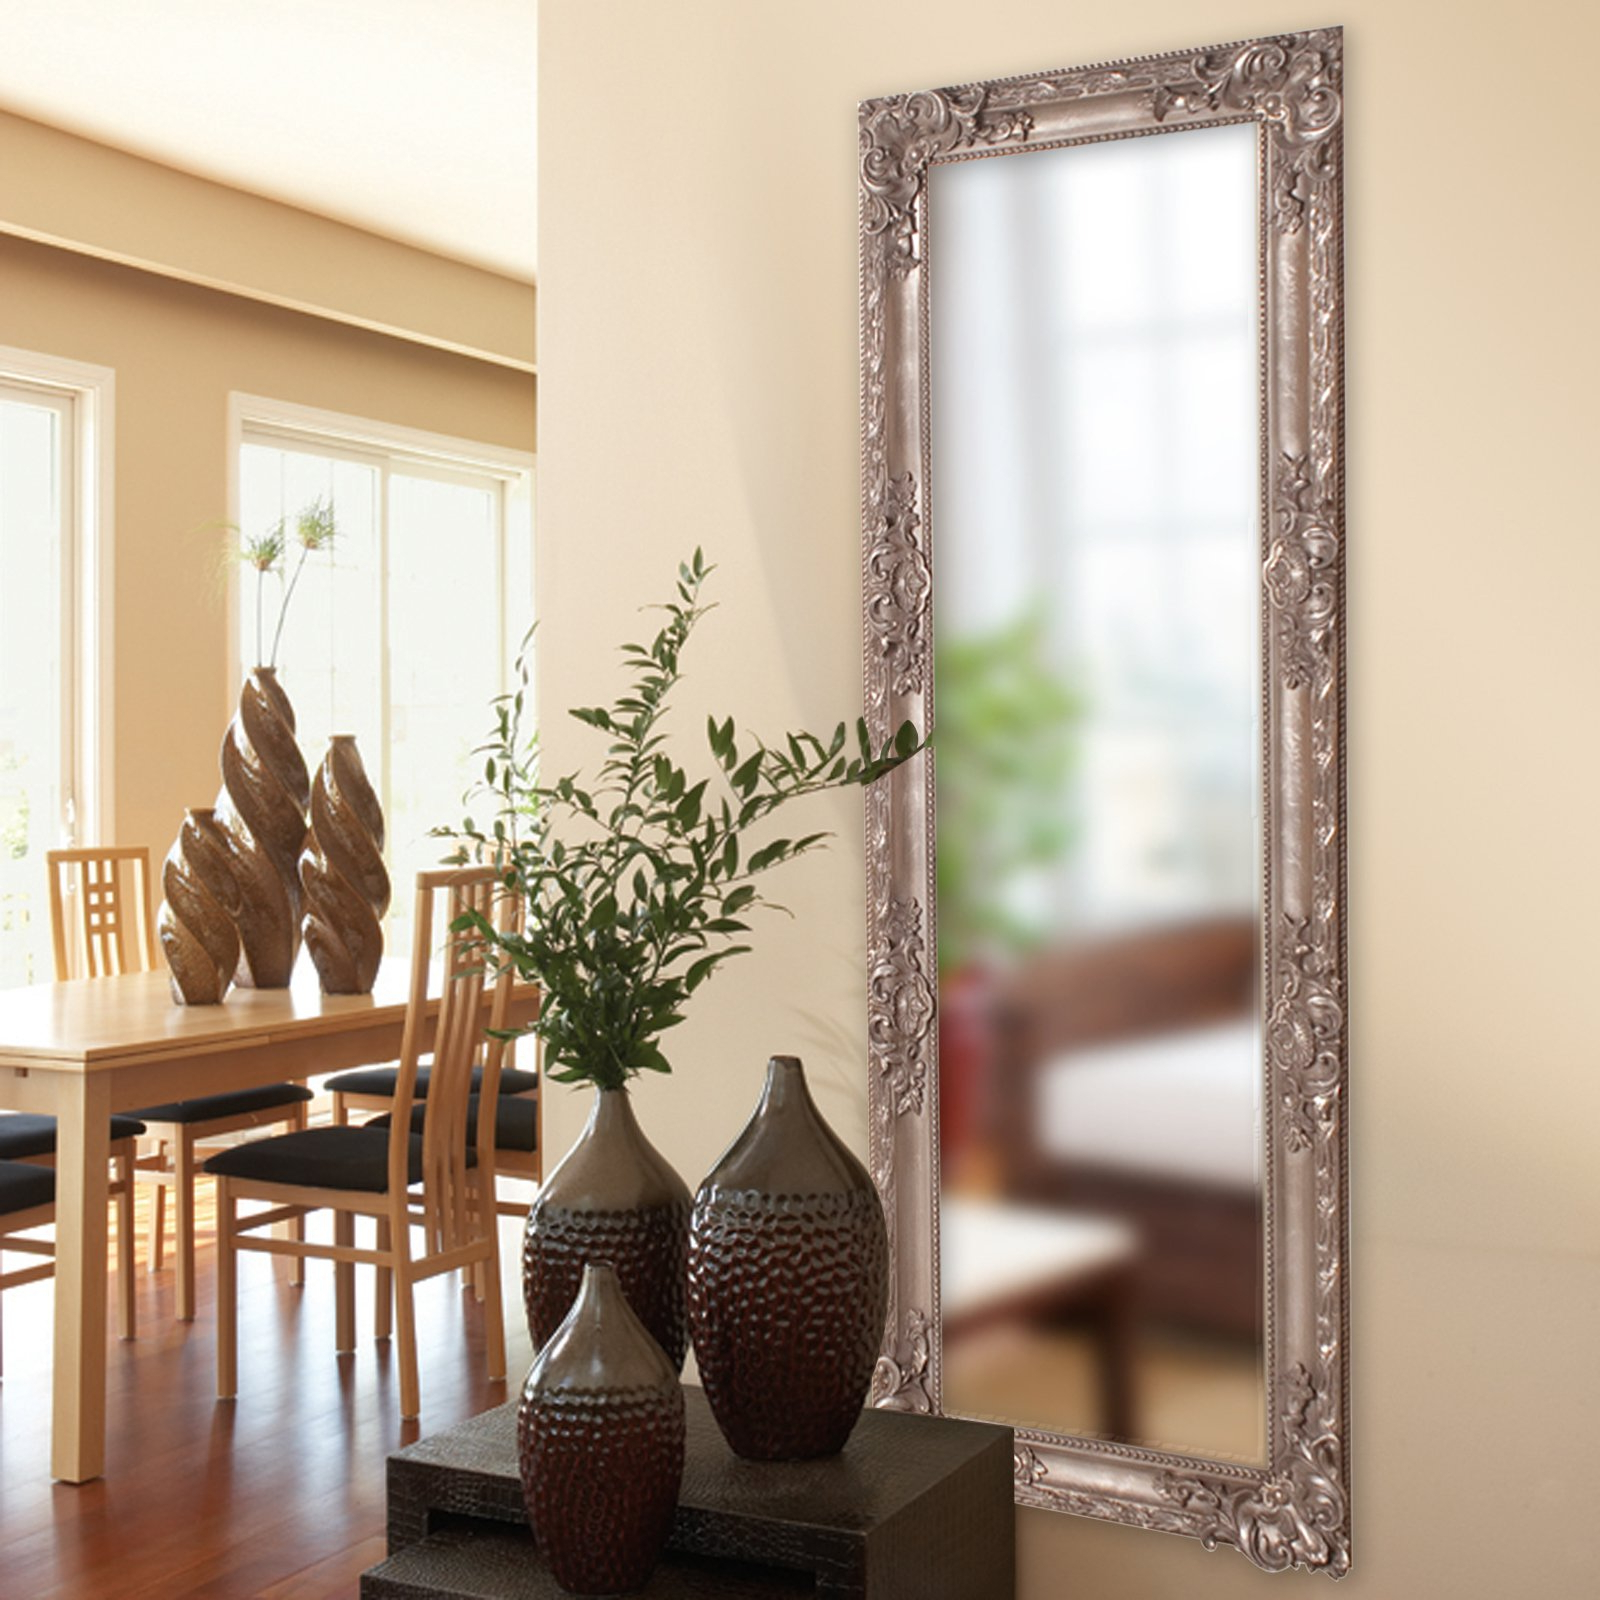 Wall Mirrors For Bedroom With Latest Belham Living Carlos Full Length Wall Mirror – 23w X 62h In (View 19 of 20)